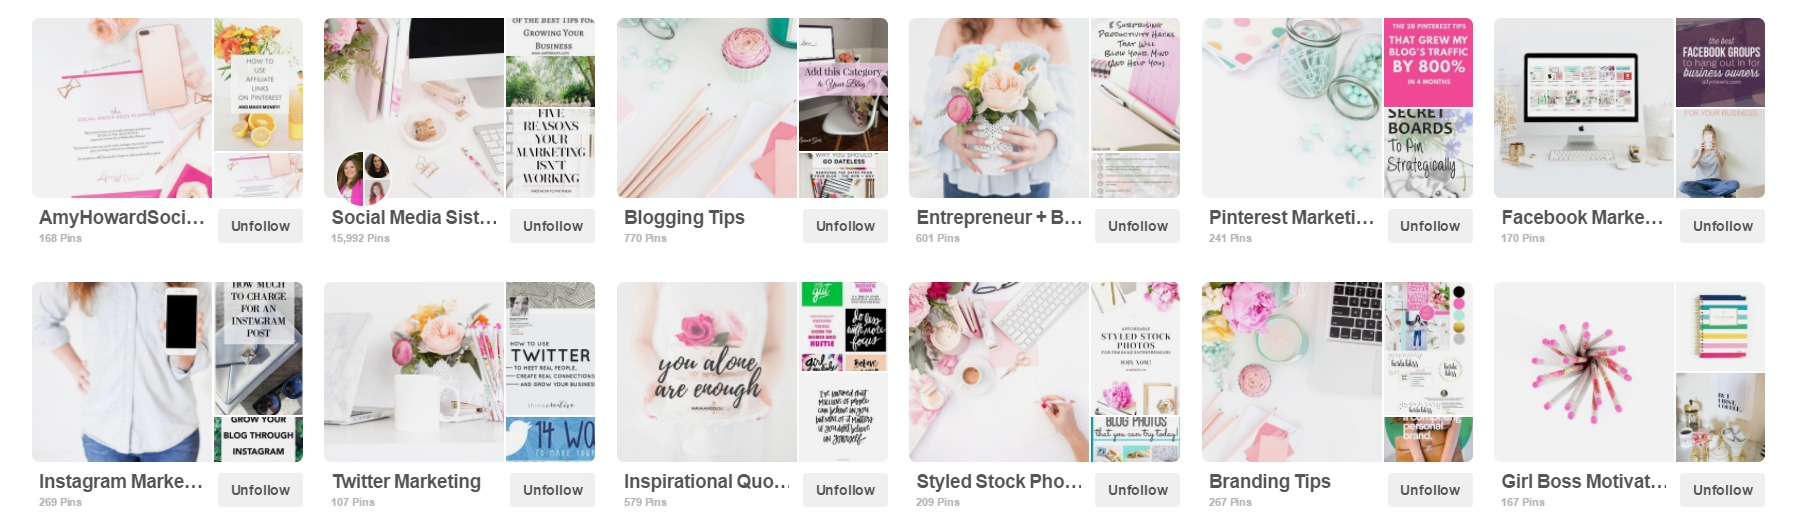 Find out how to update your Pinterest Board Covers with Stock Photography with these tips from Pinterest and social media strategist, Amy Howard Social!